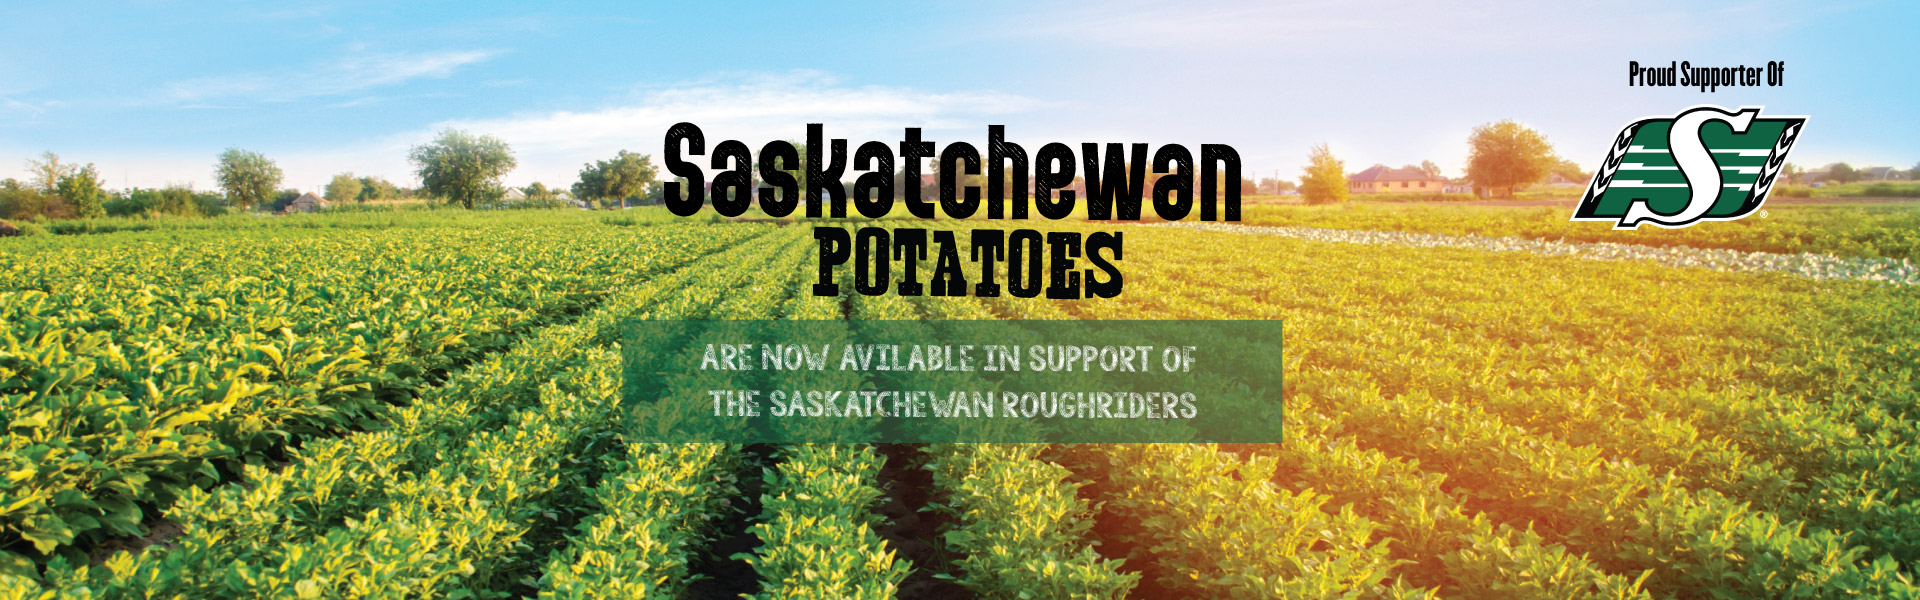 Saskatchewan Potatoes